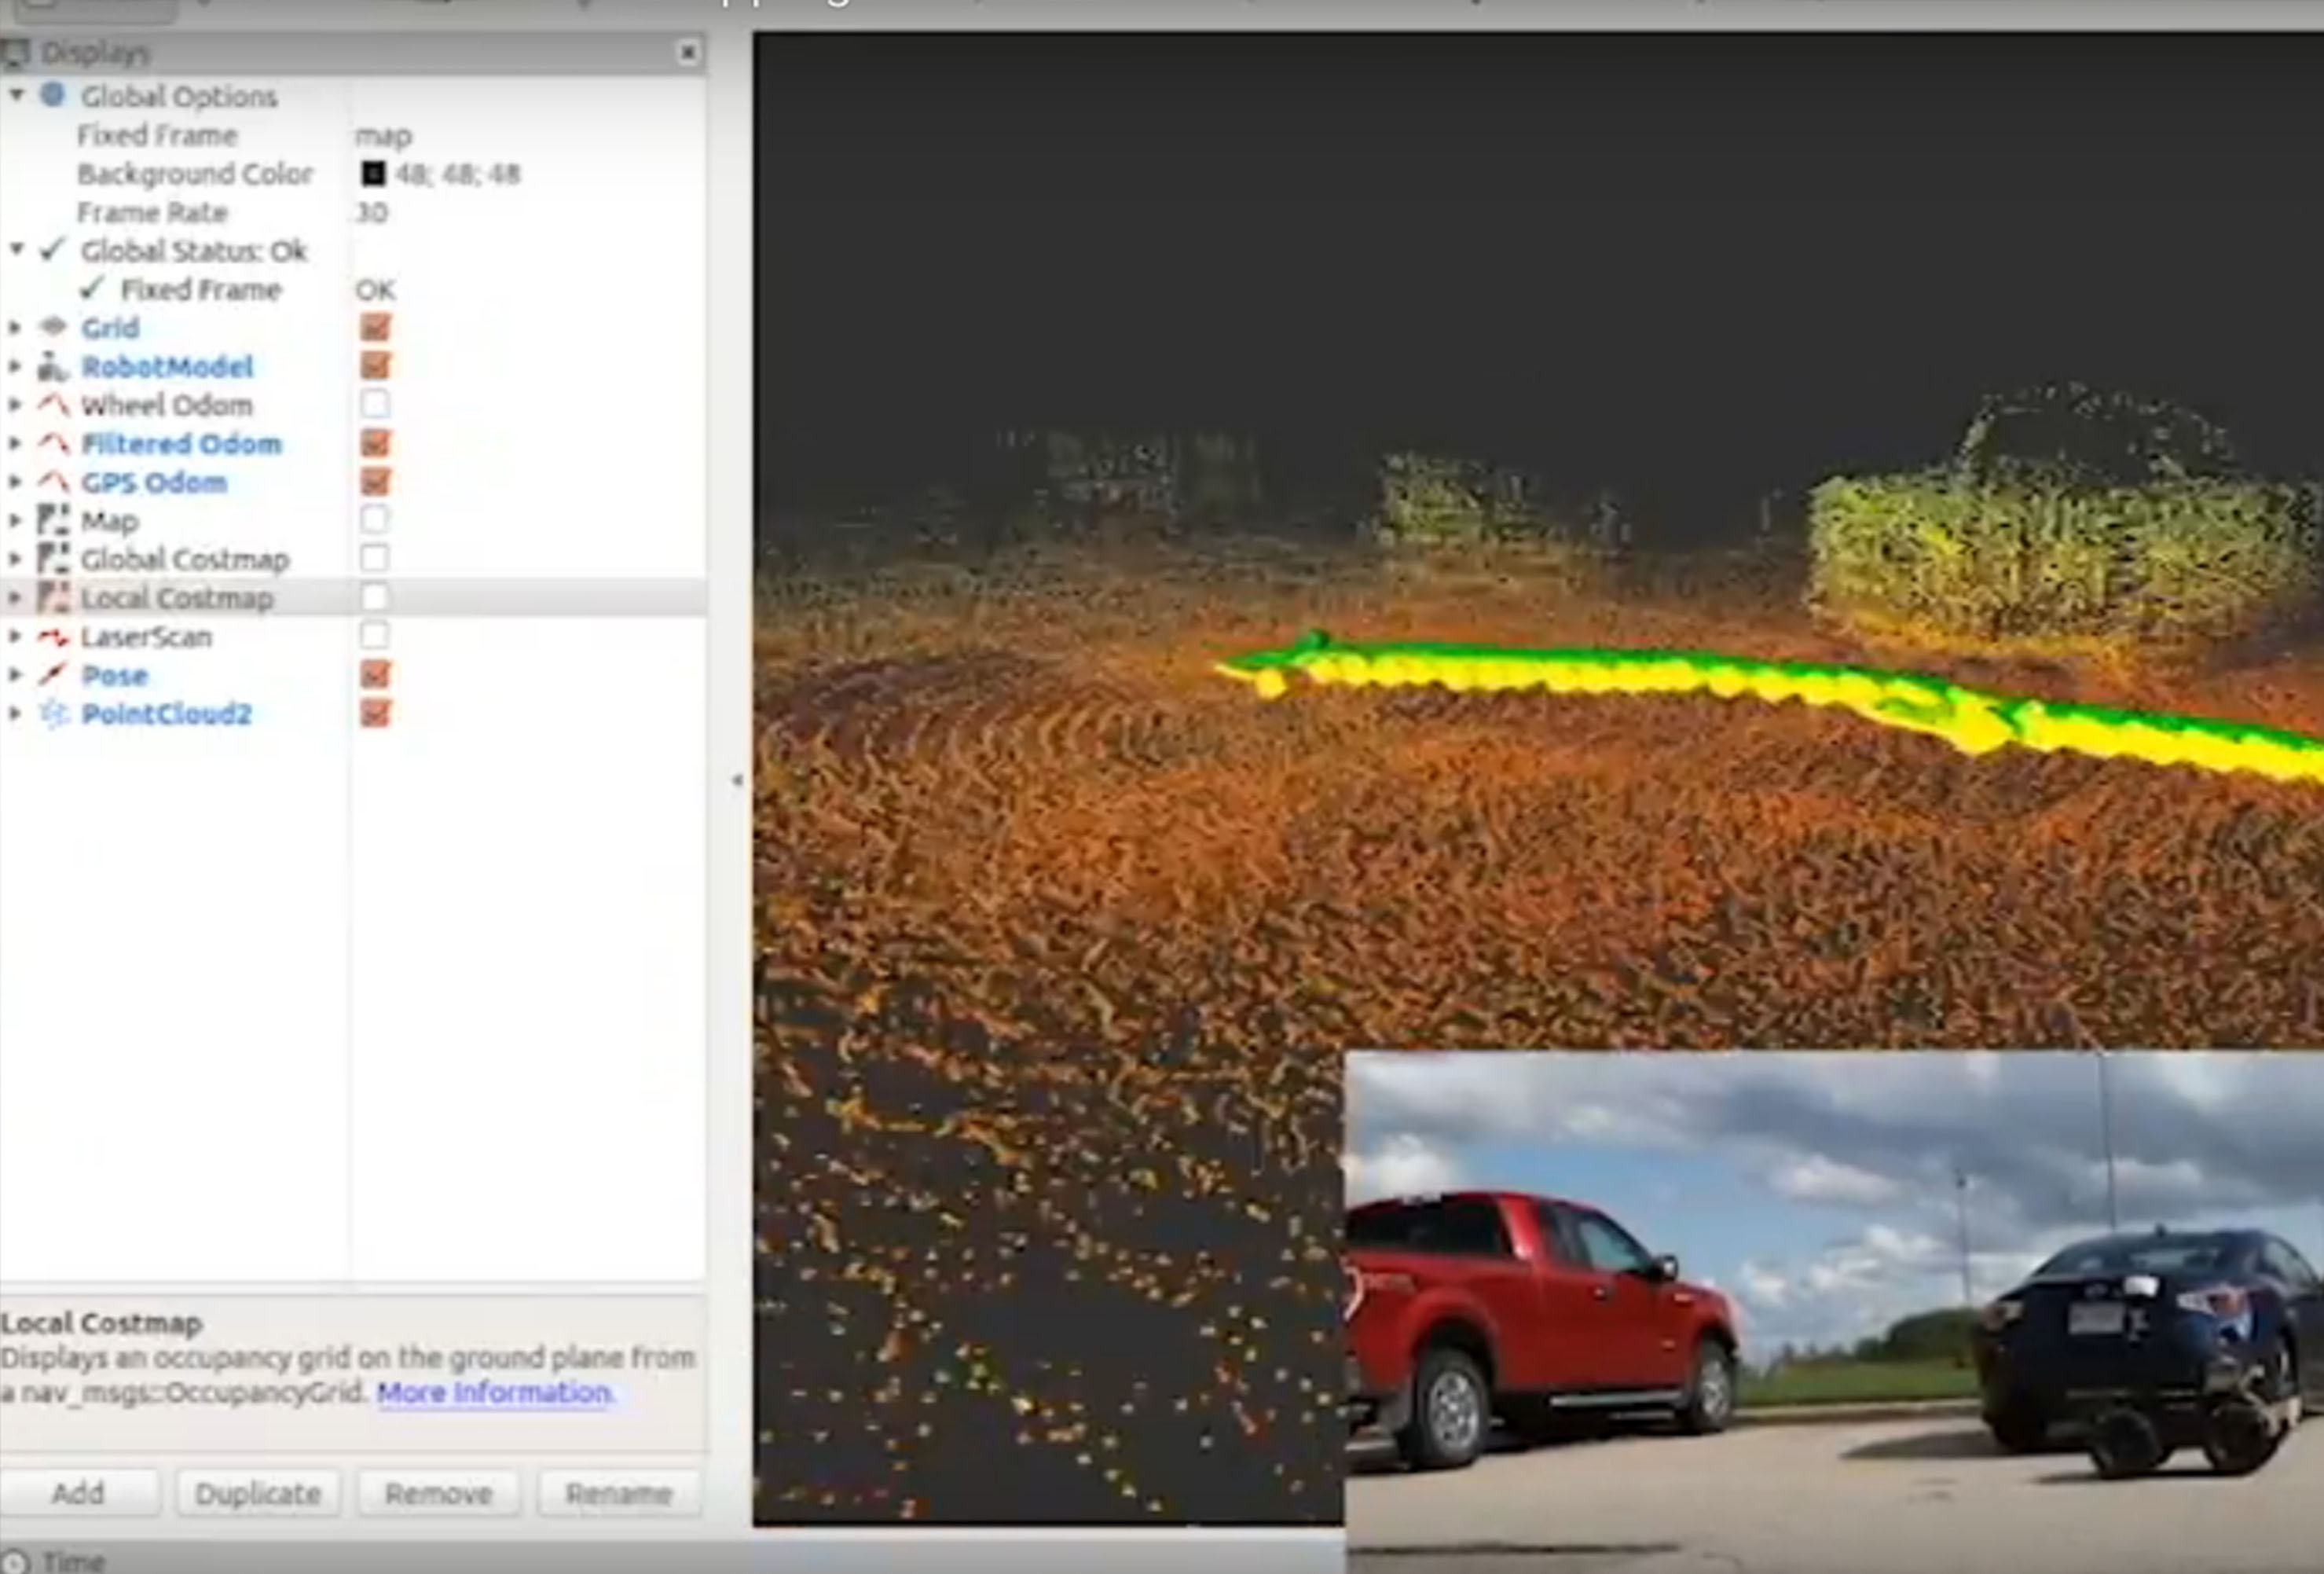 Mapping Deevelopment cars lidar rviz SLAM